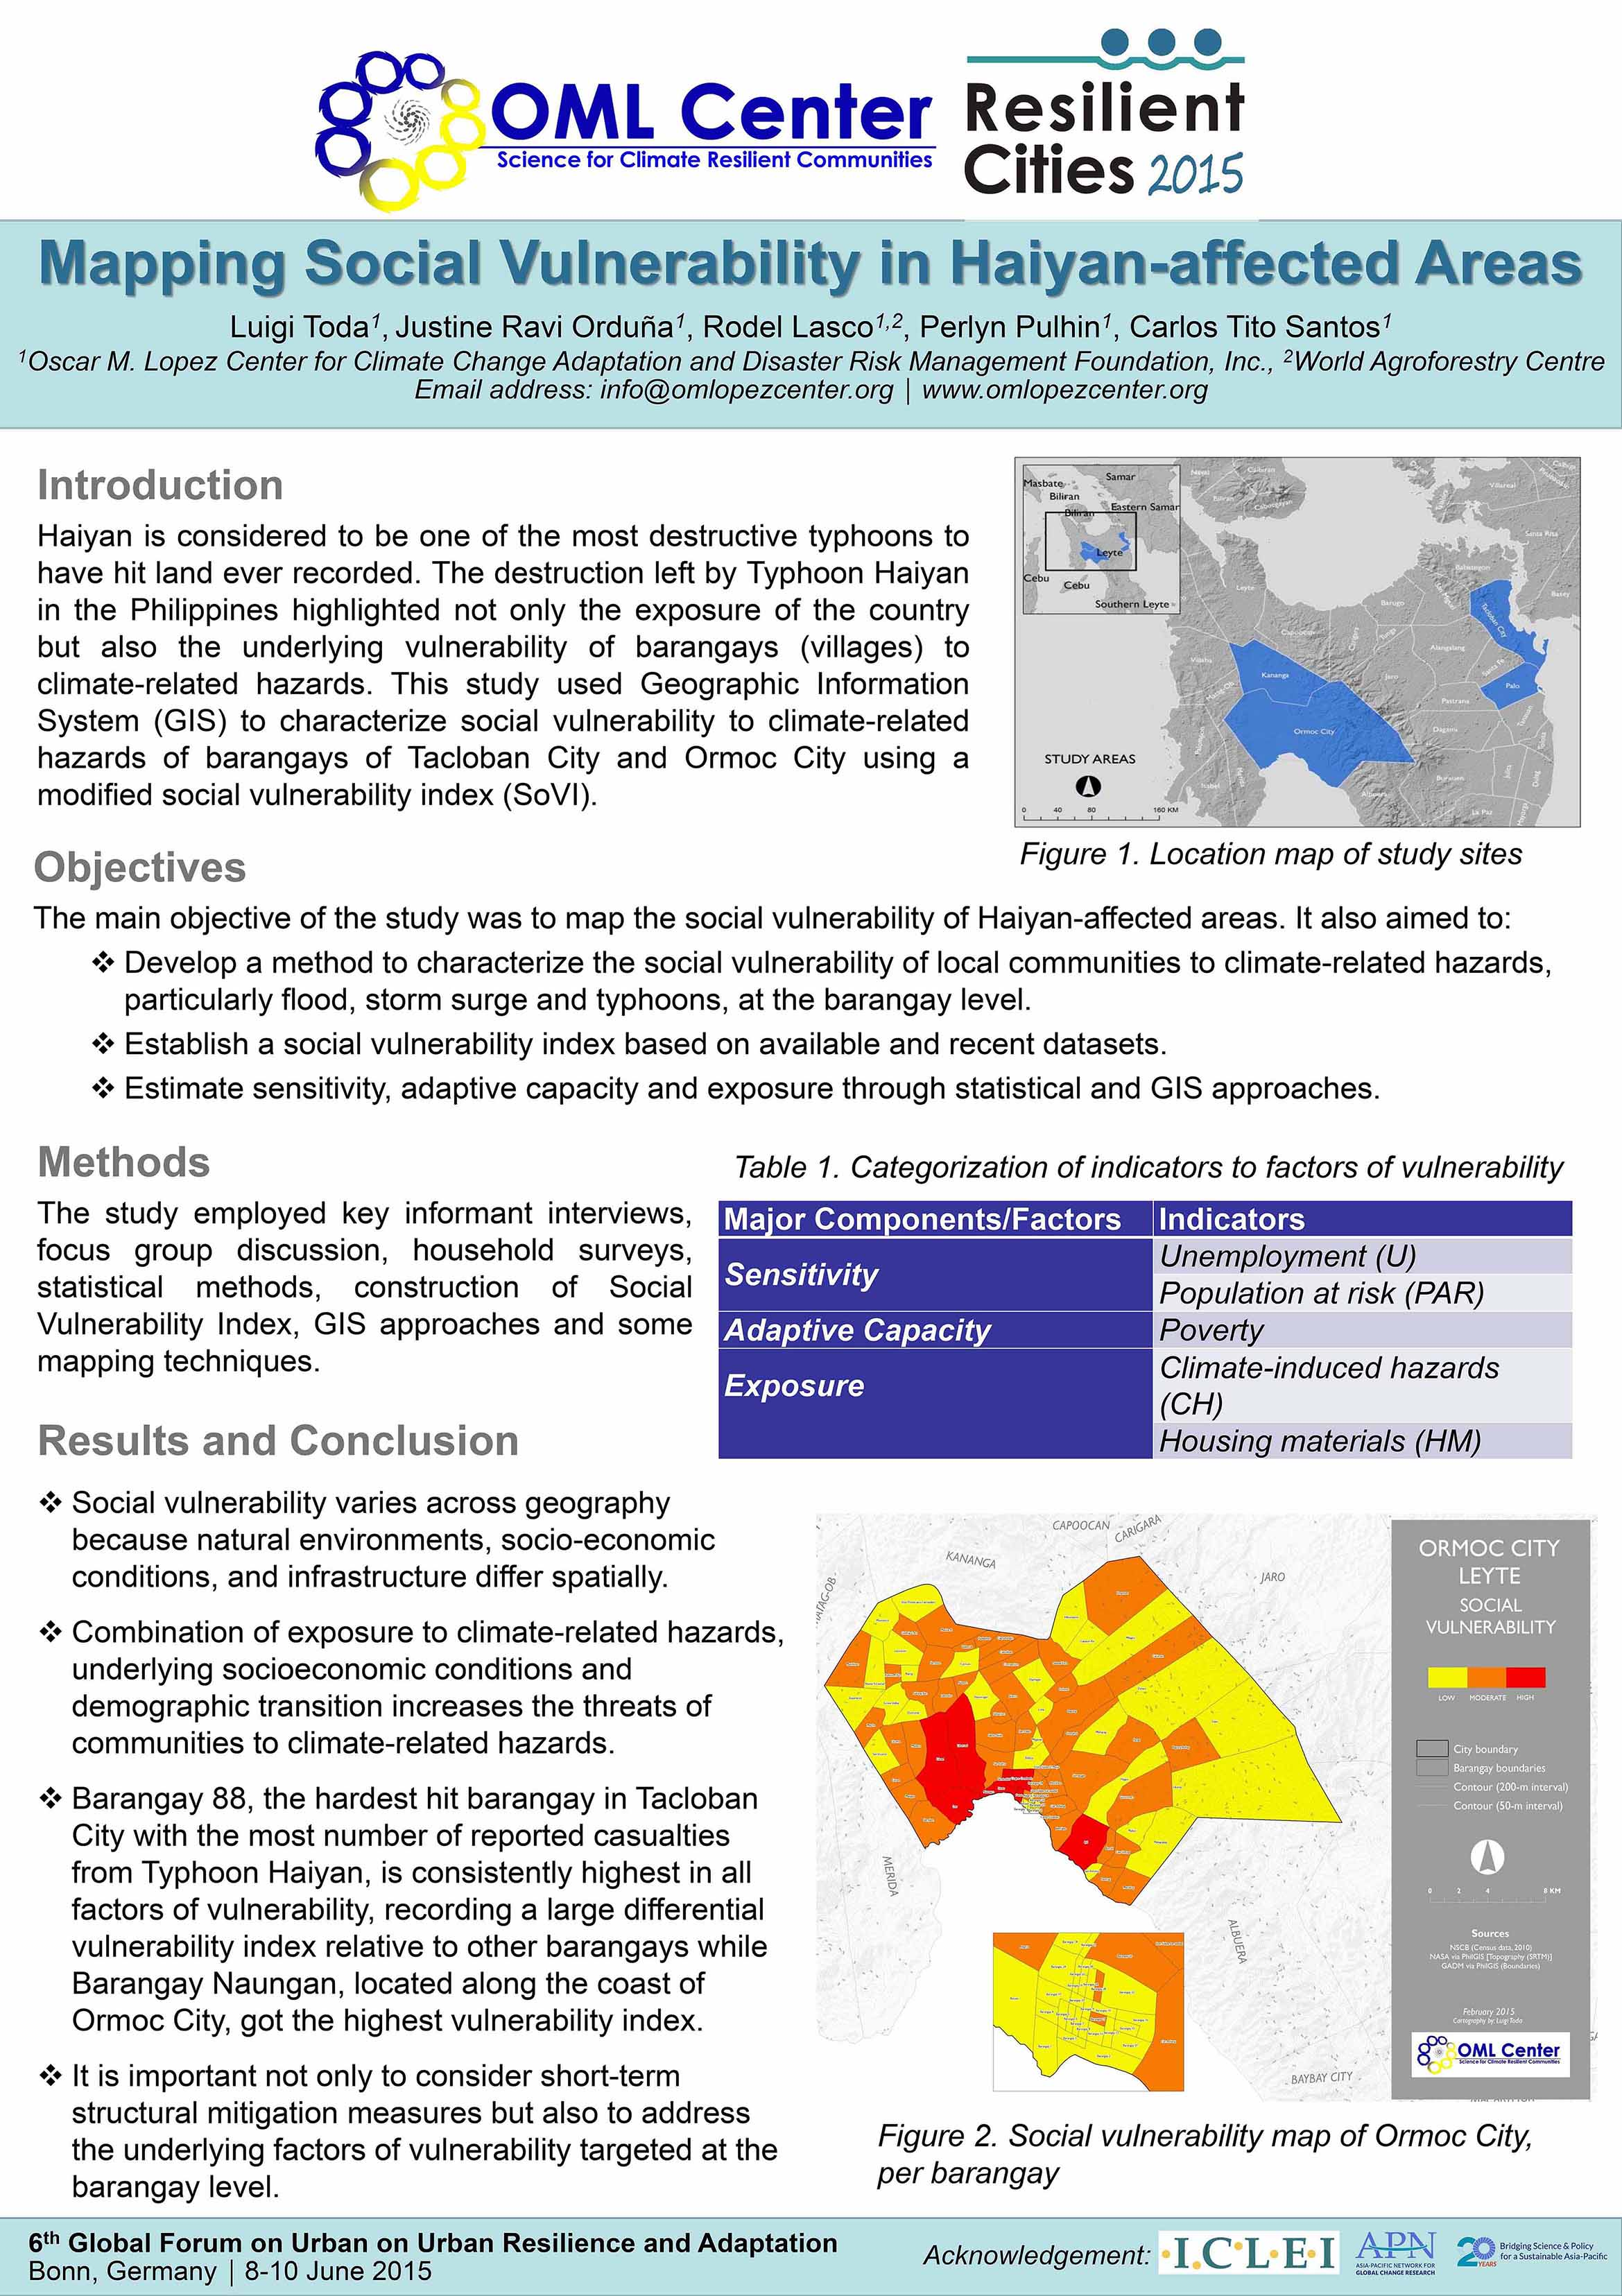 infographic-mapping-social-vulnerability-in-haiyan-affected-areas